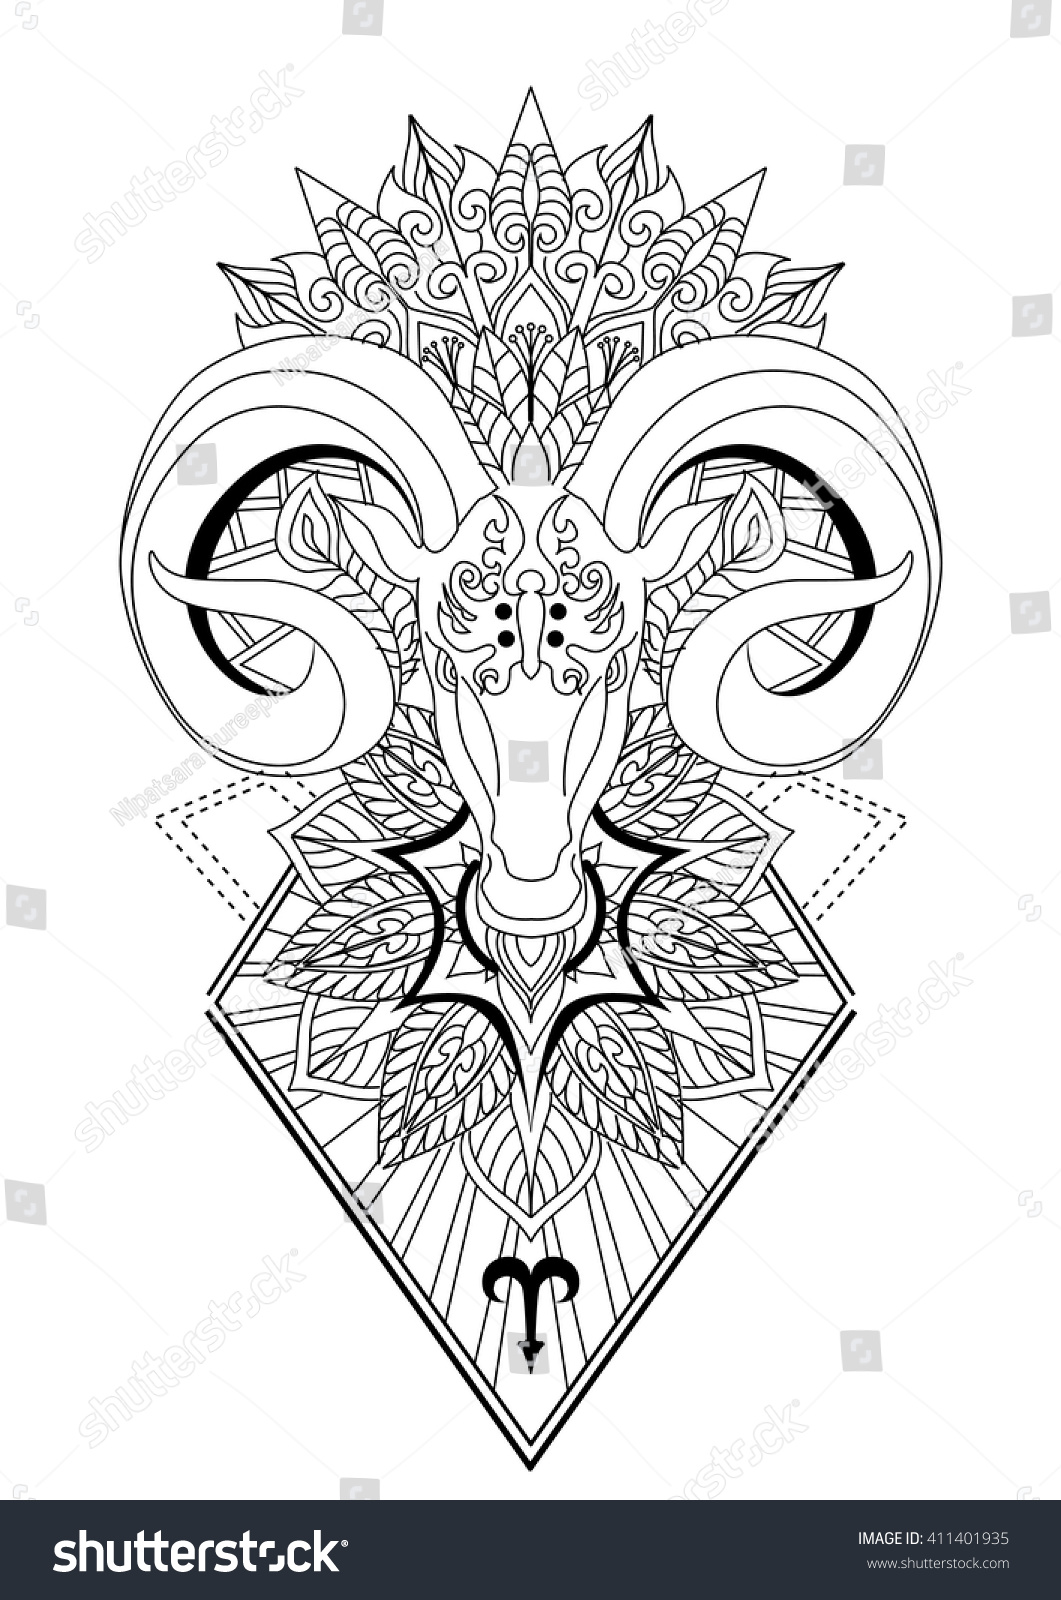 Aries Mandala Tattoo Designhorn Sheep Line Stock Vector